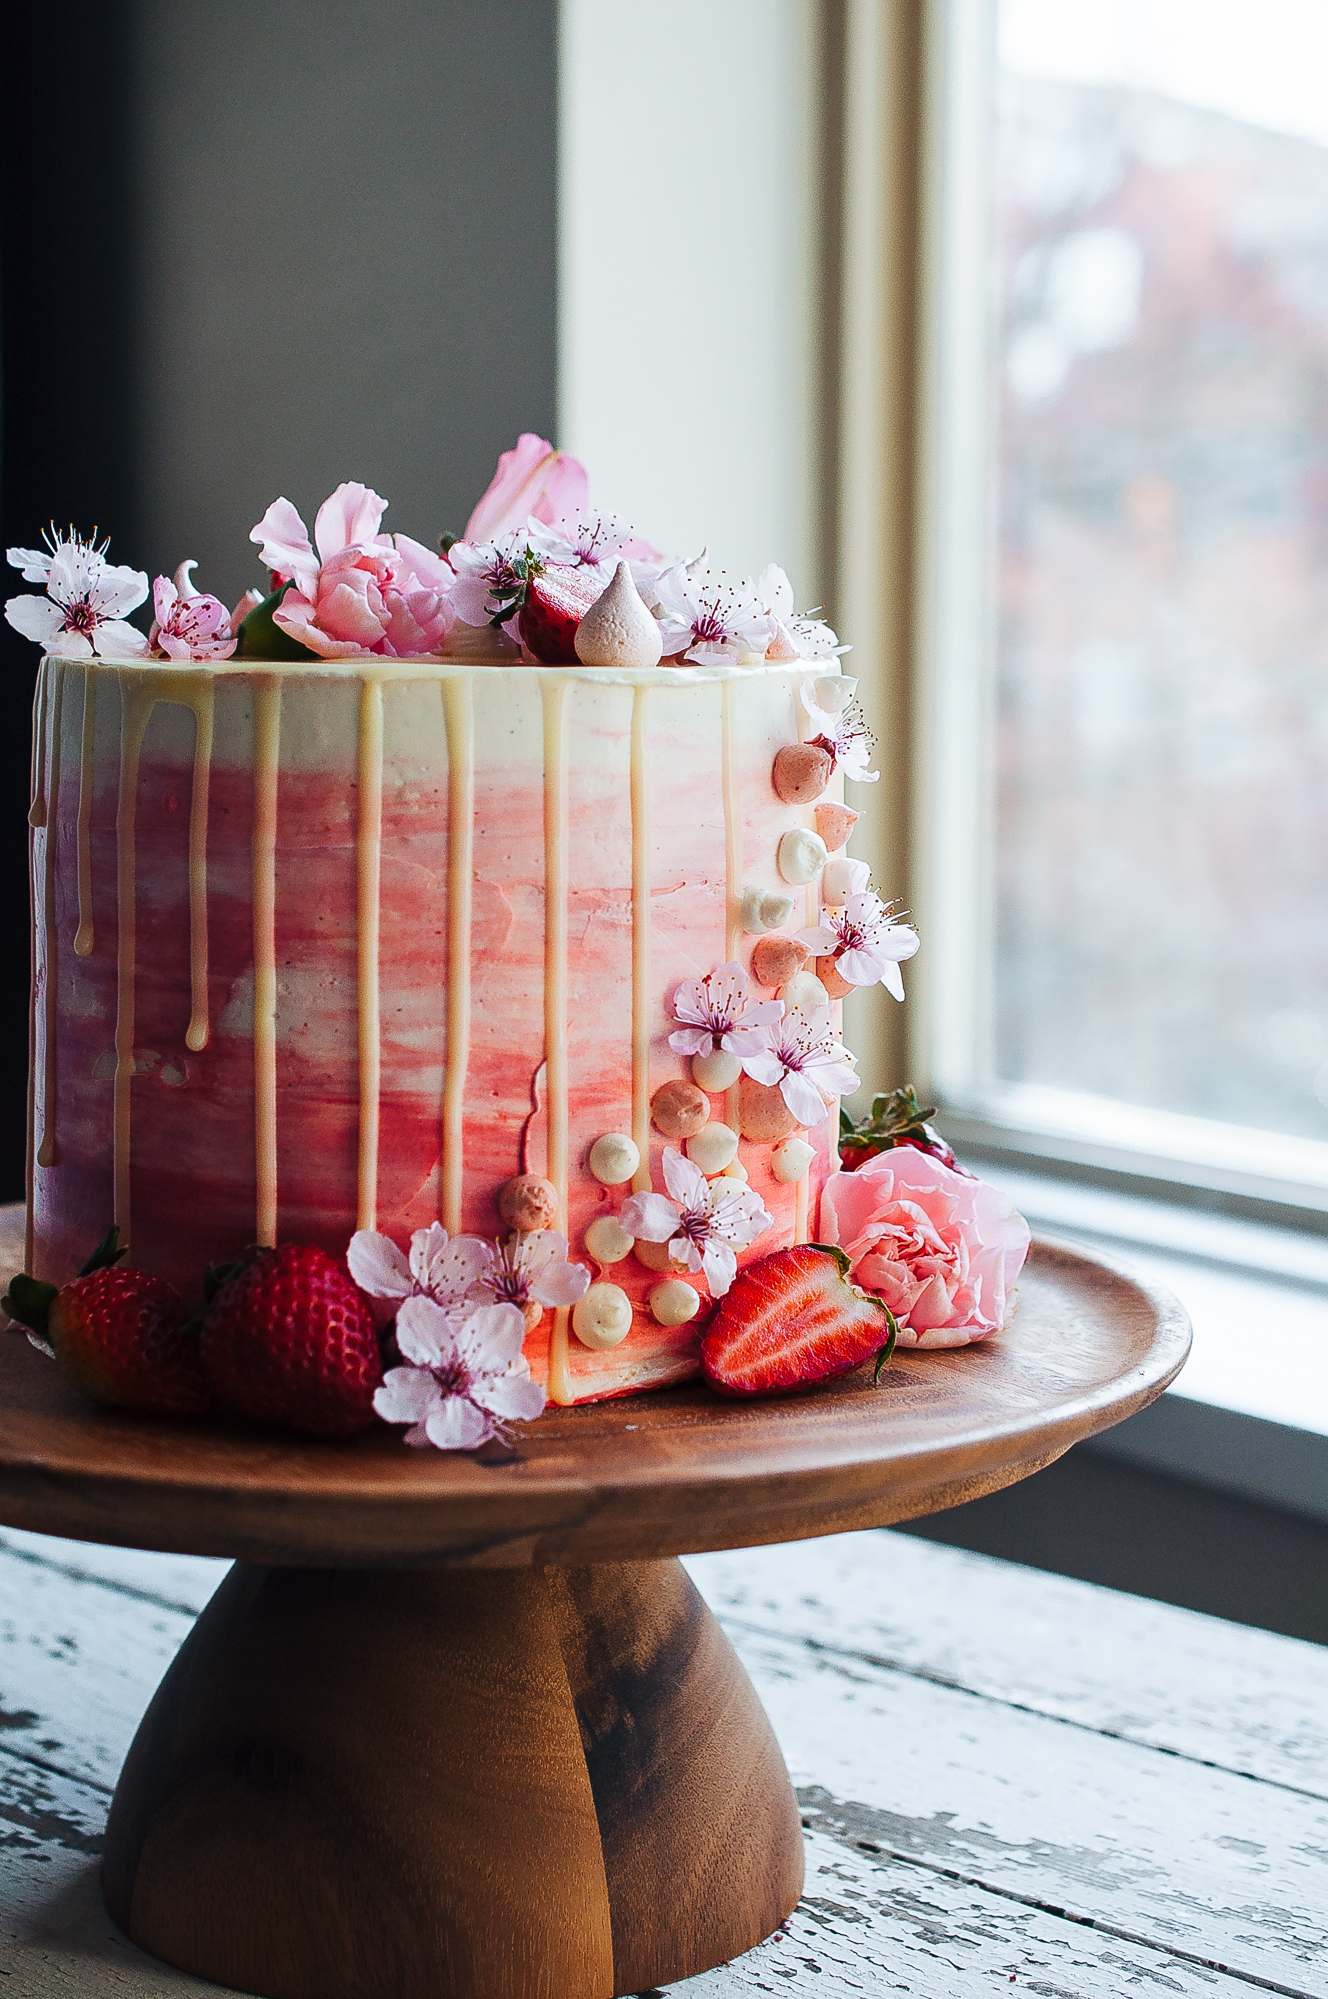 Strawberry and vanilla cake 12.jpg